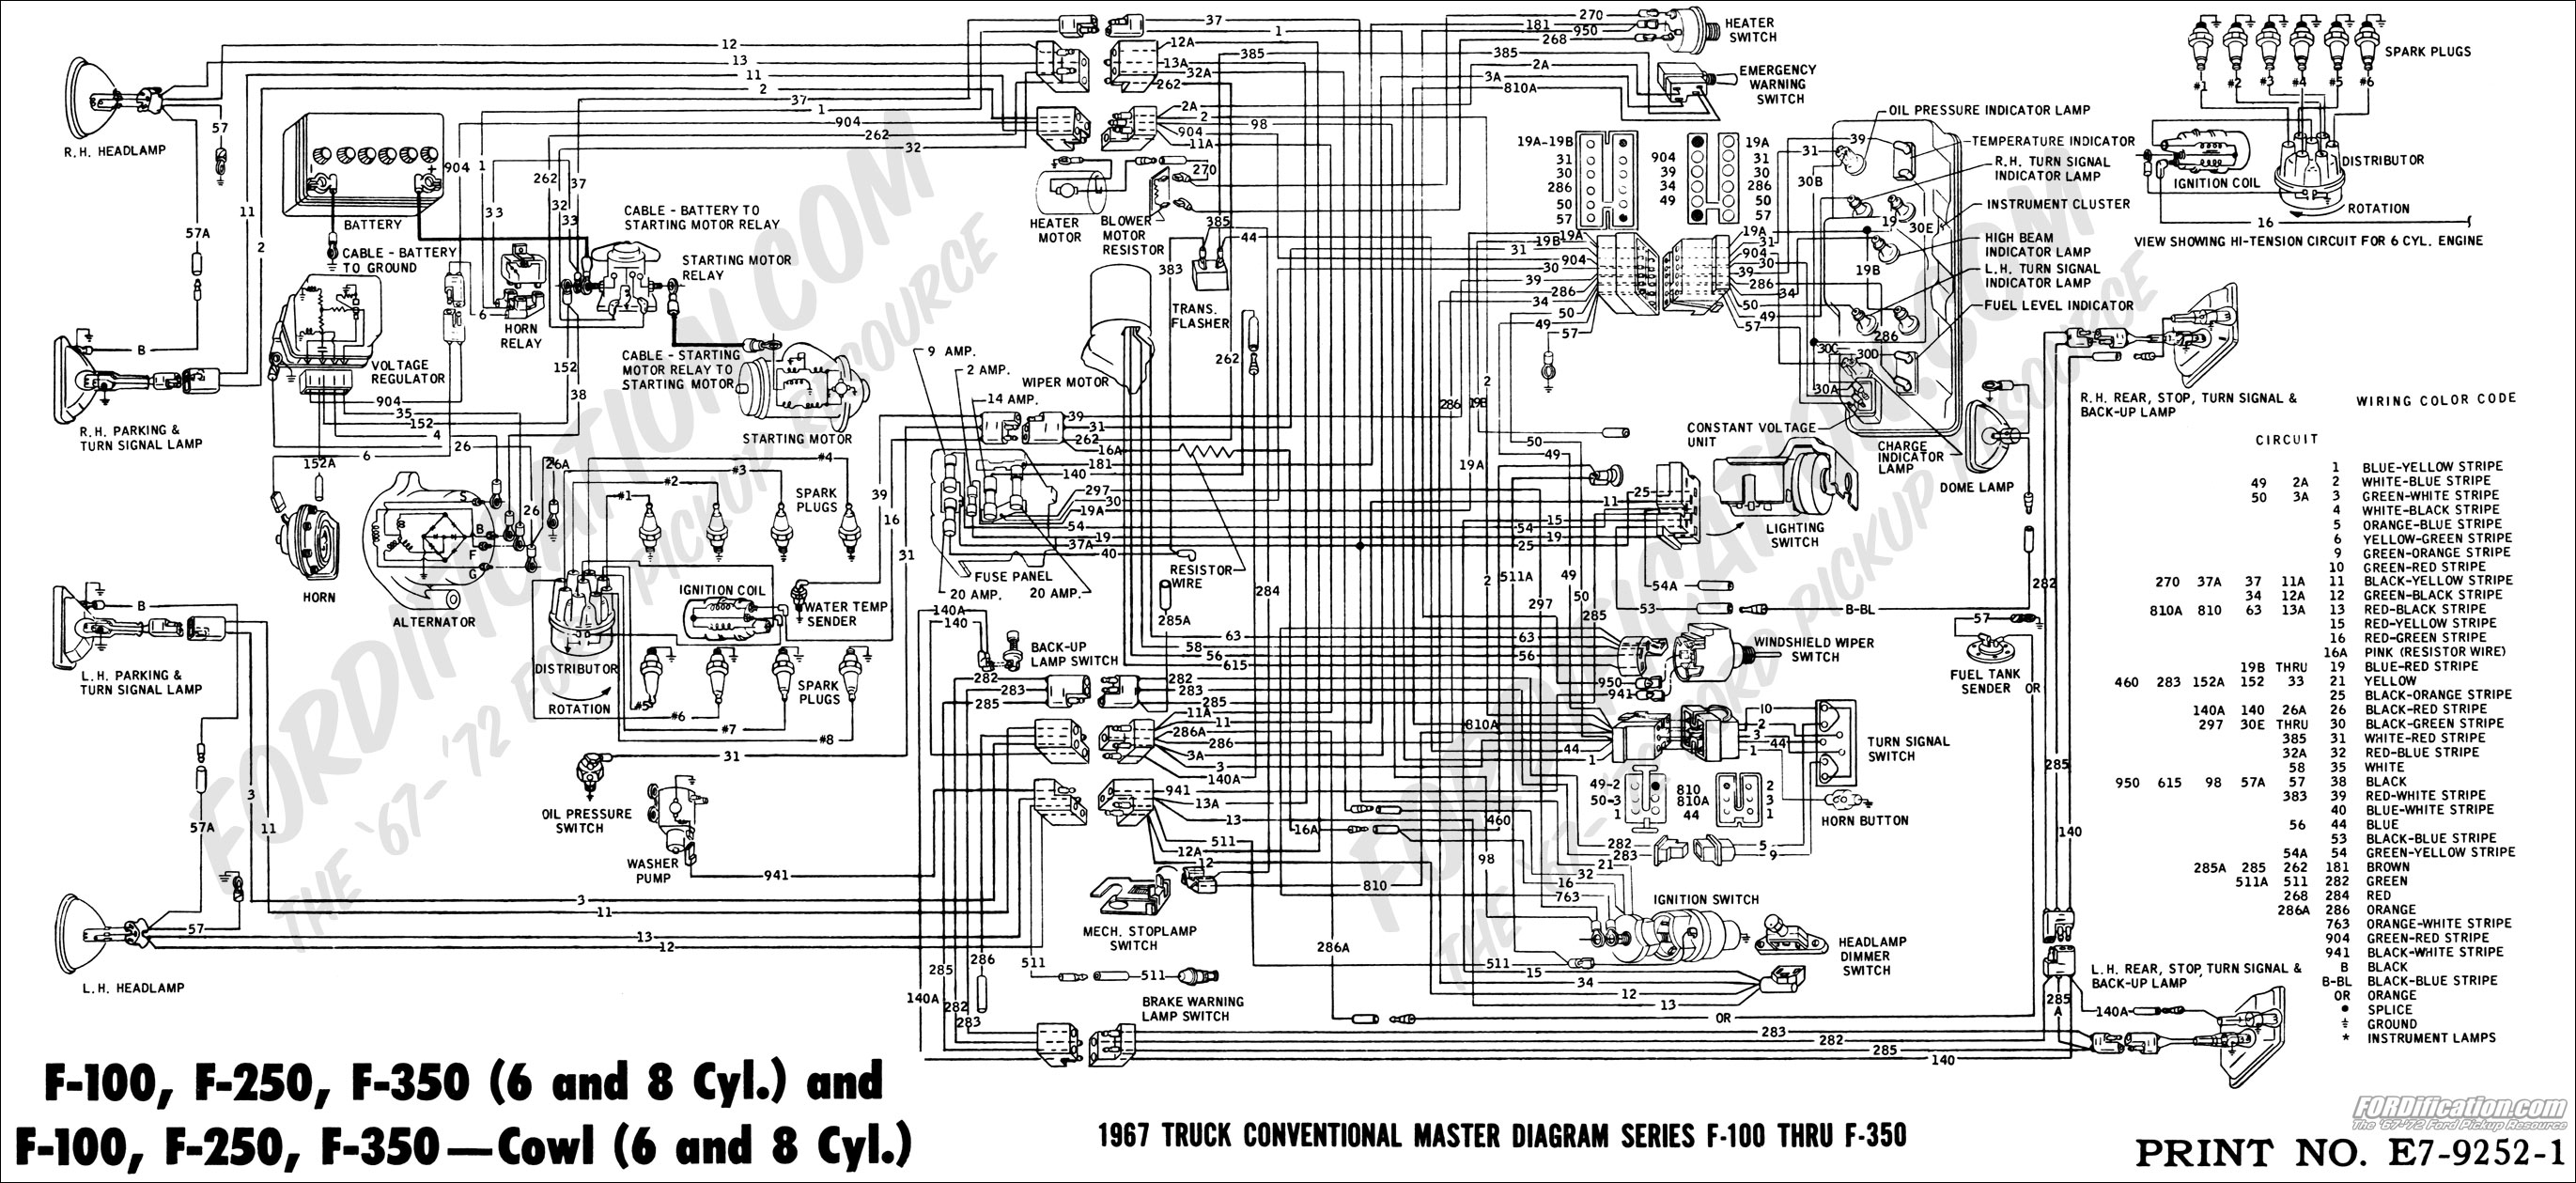 ford truck technical drawings and schematics section h wiring 1967 master wiring diagram